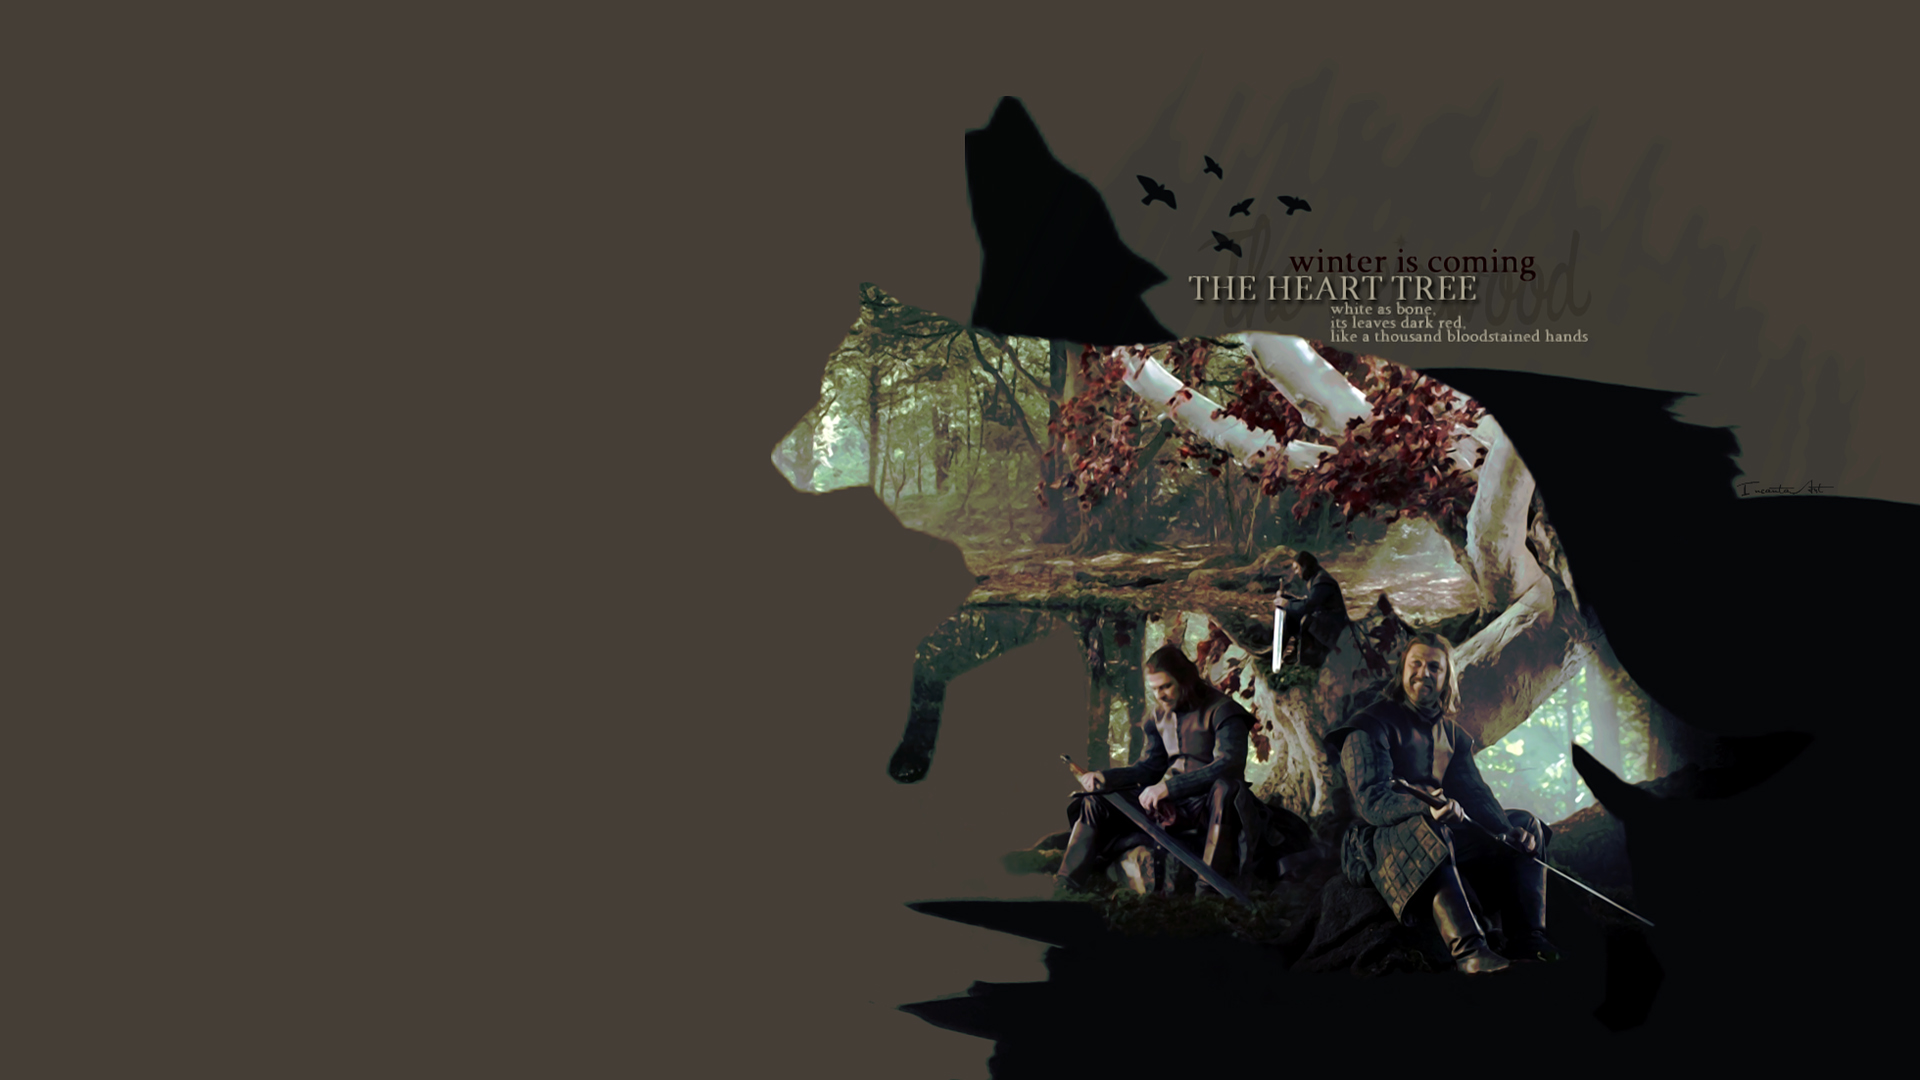 Game Of Thrones Supernatural Heart Thrones Tree Game Bright Game Of 1920x1080